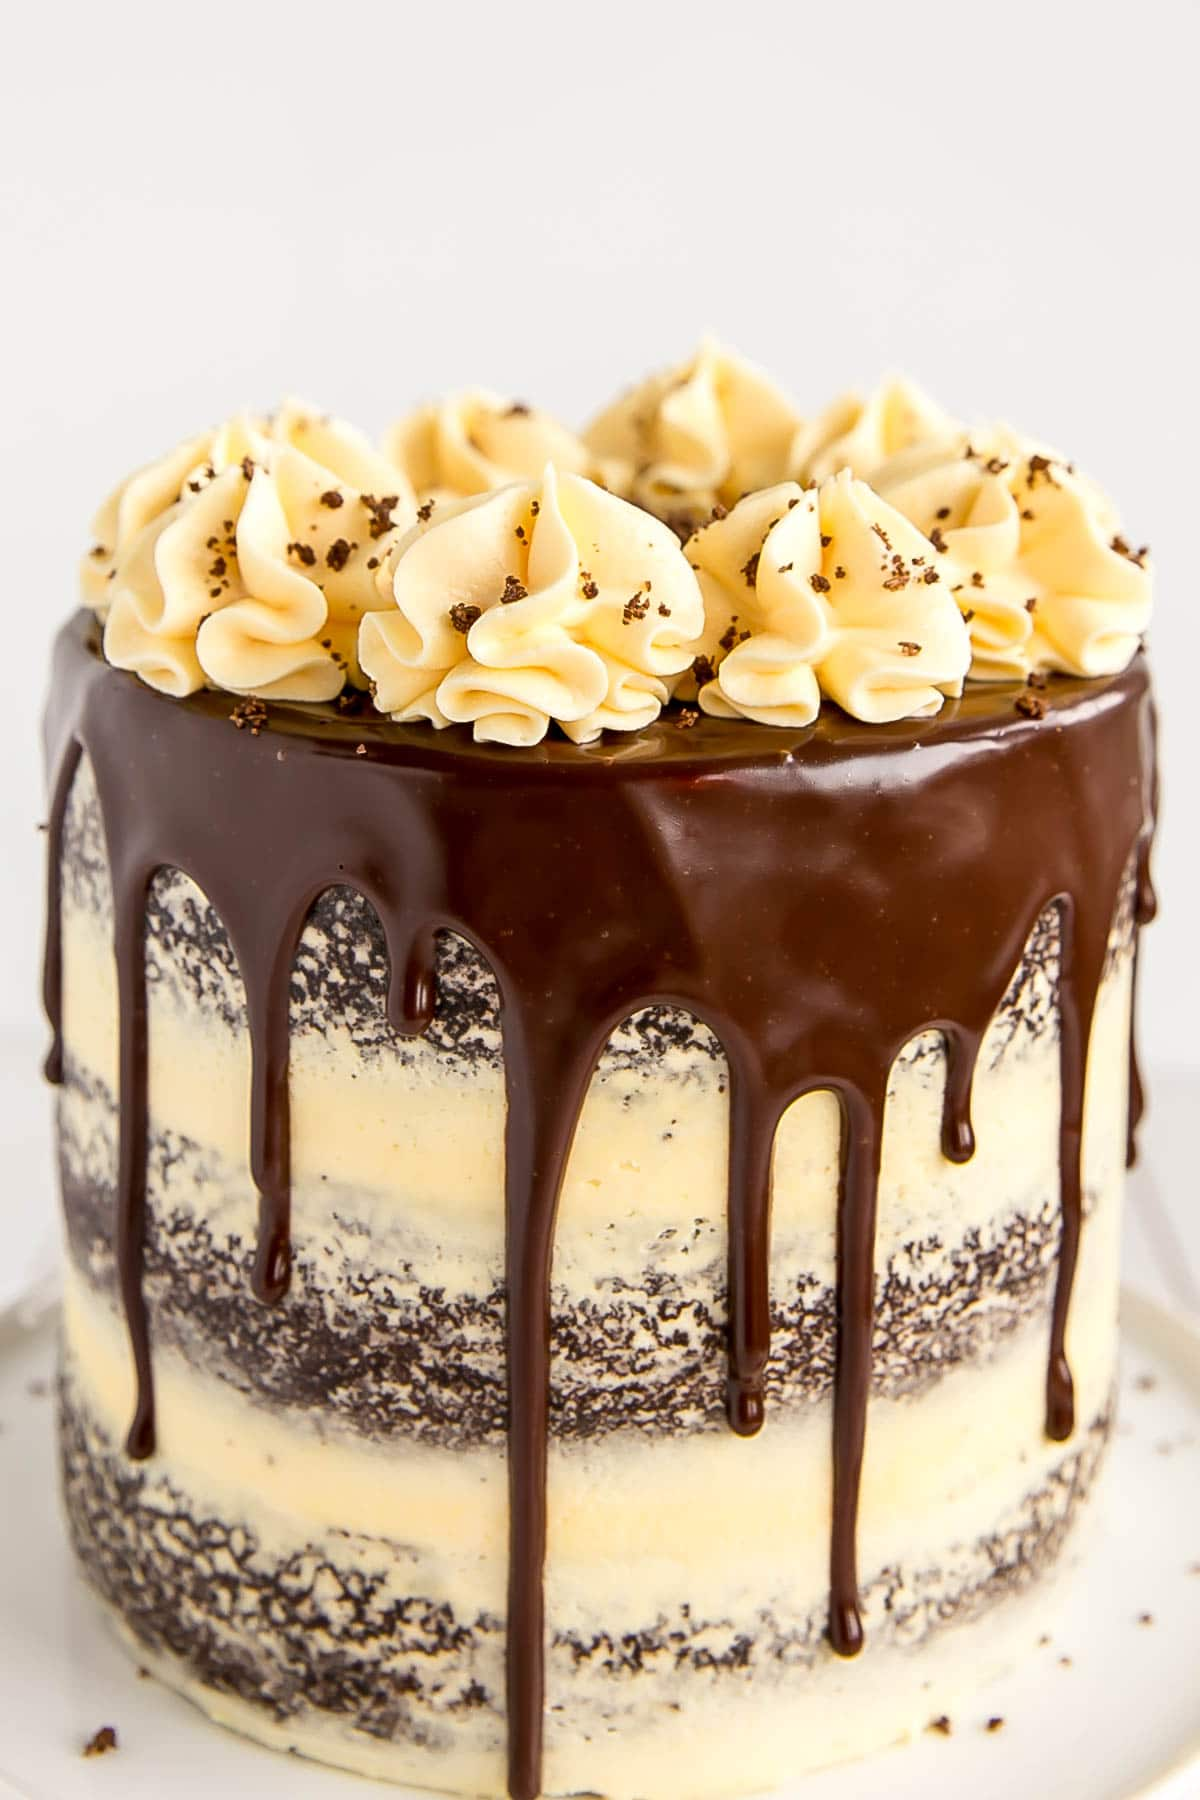 Chocolate cake with vanilla custard frosting.